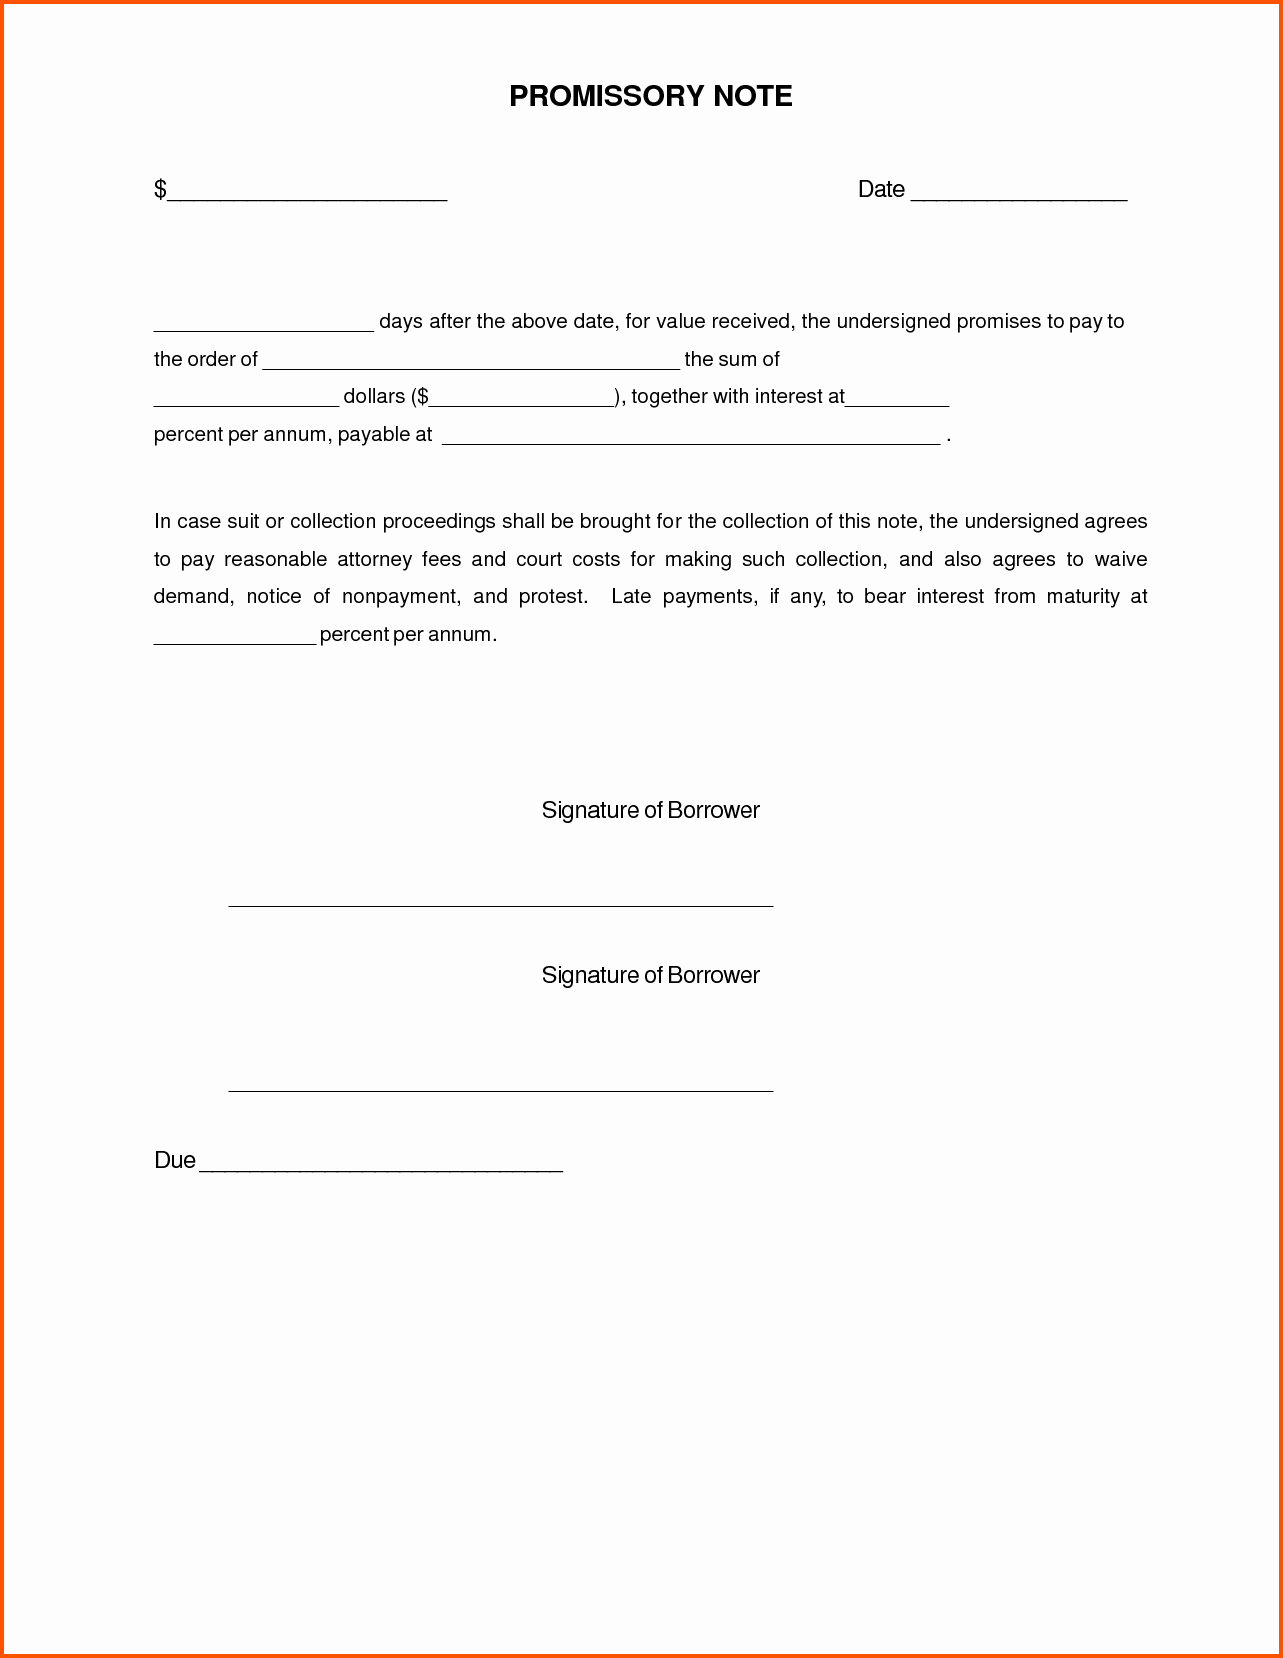 demand letter promissory note template example-Auto Promissory Note Template Luxury Promissory Note Template for Personal Loan Indian Sample Pdf form 20-c